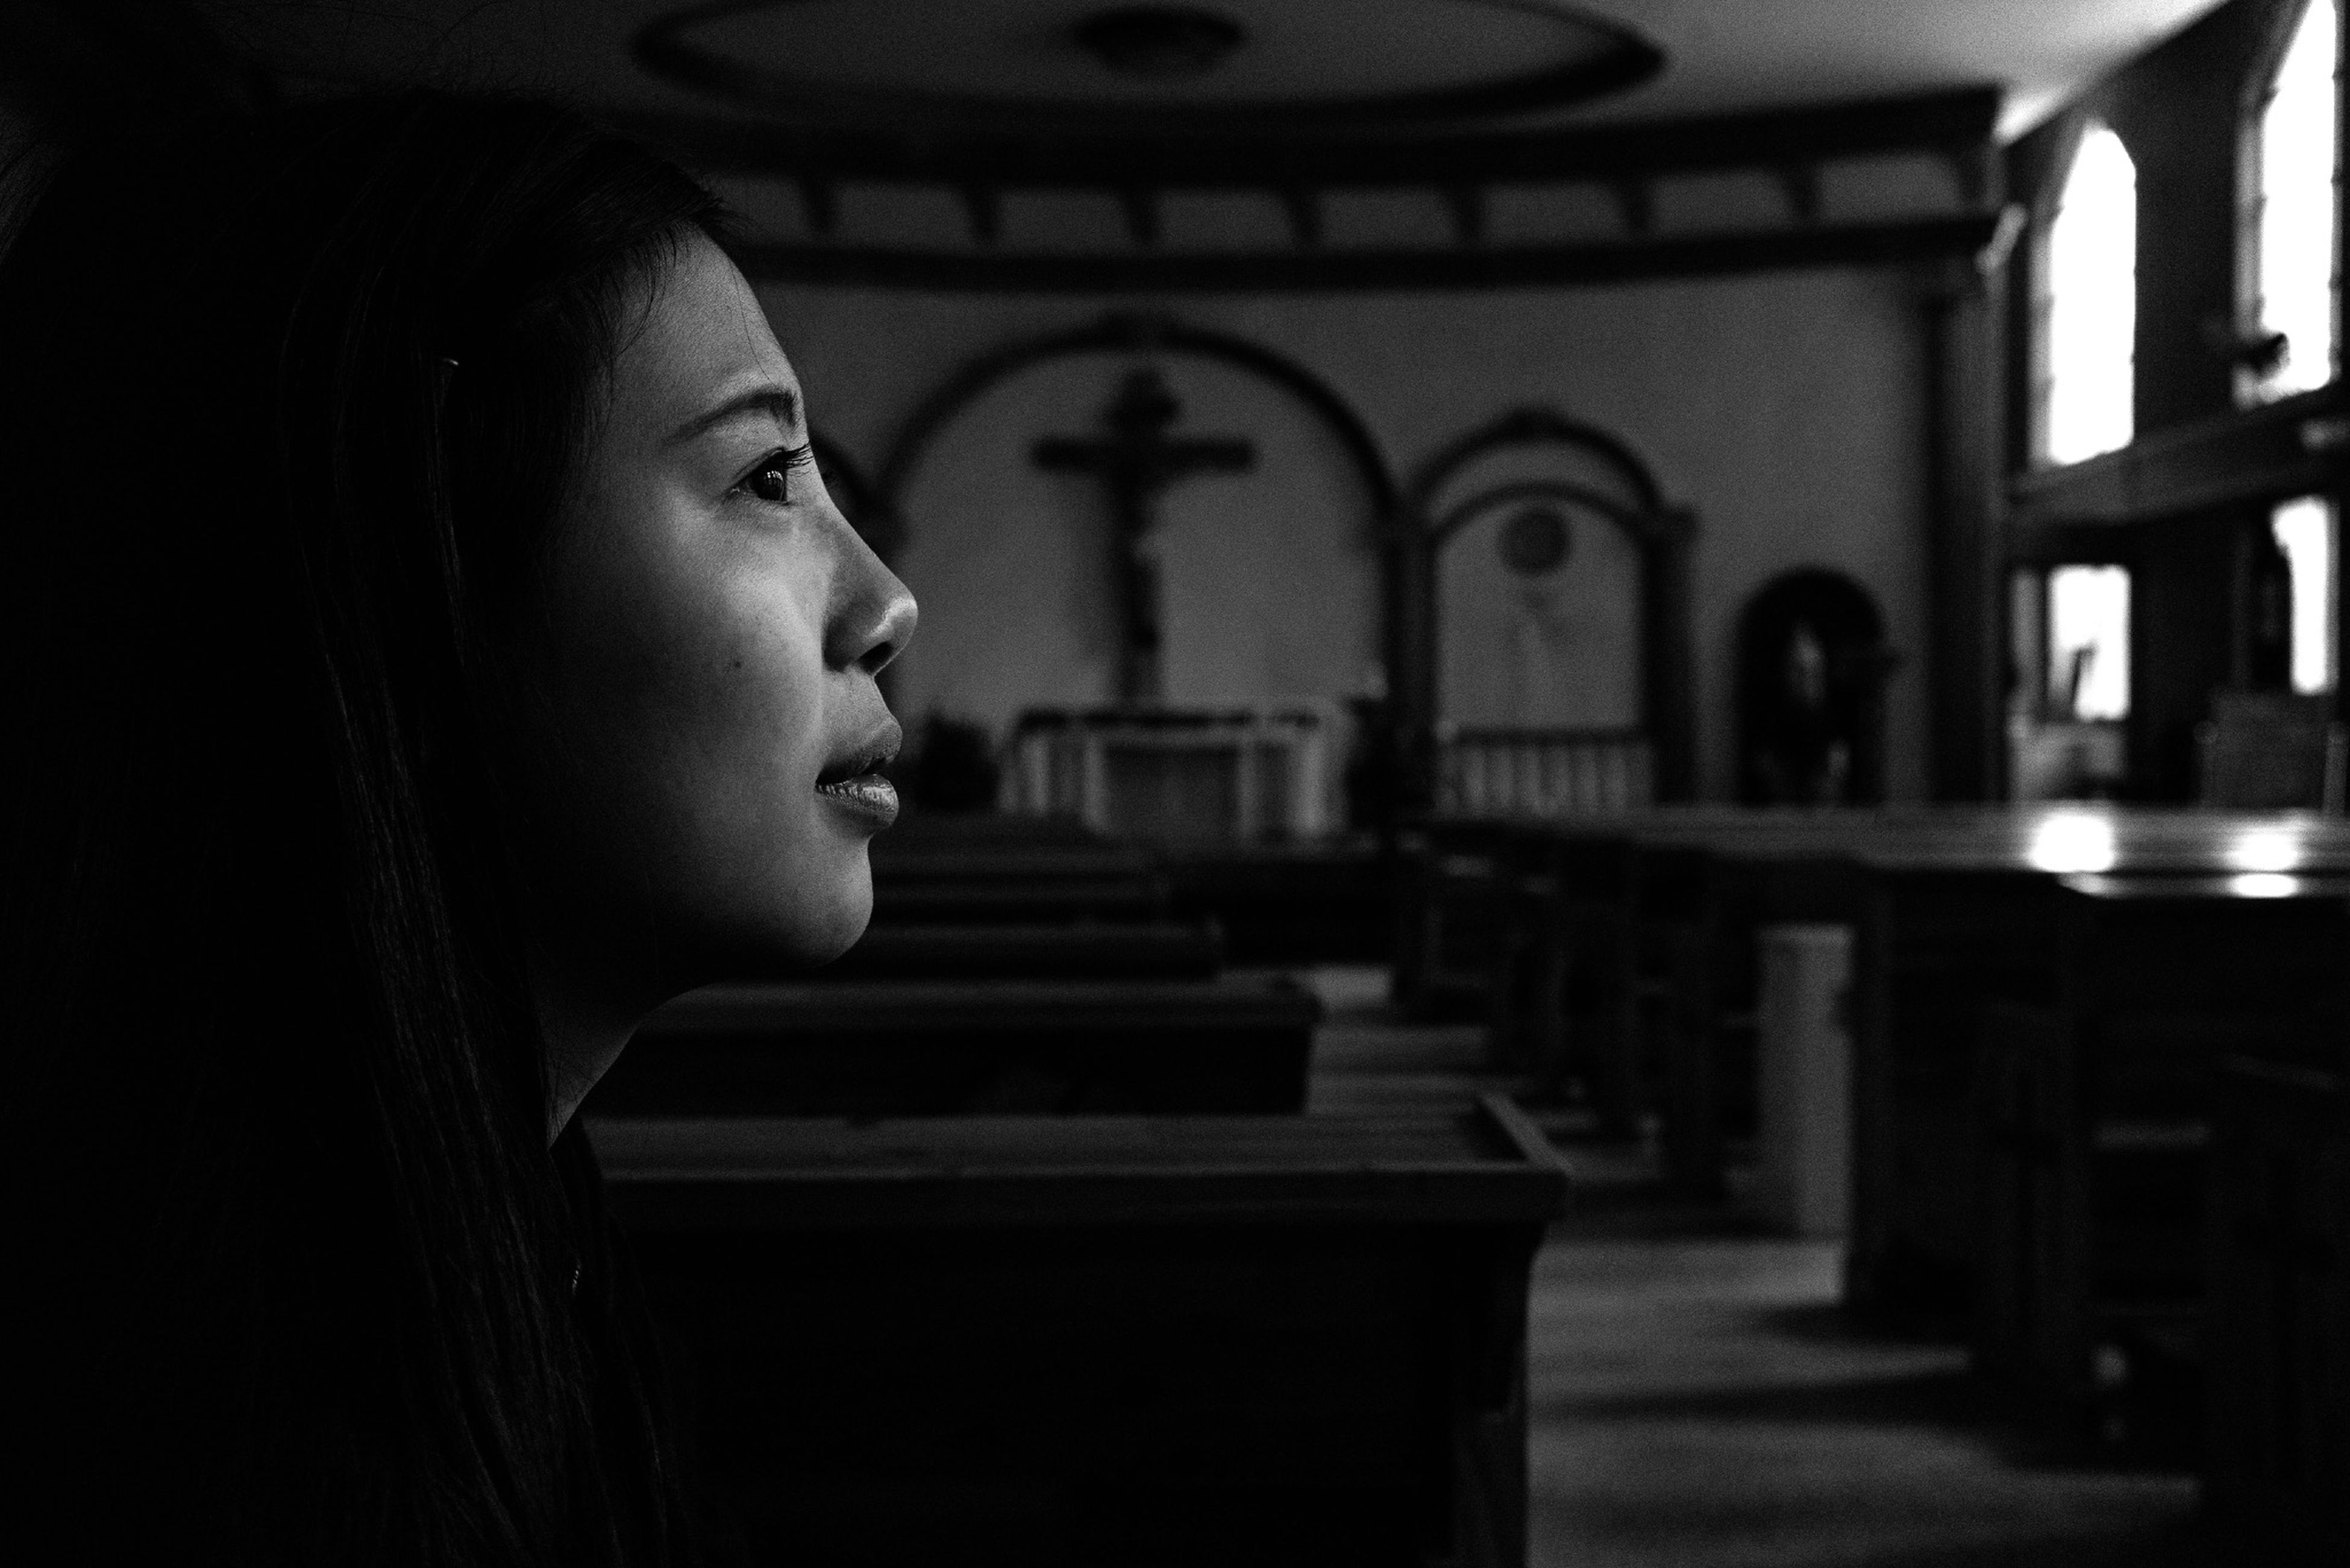 indoors, architecture, lifestyles, headshot, focus on foreground, built structure, contemplation, spirituality, religion, front view, person, place of worship, young adult, looking at camera, close-up, portrait, leisure activity